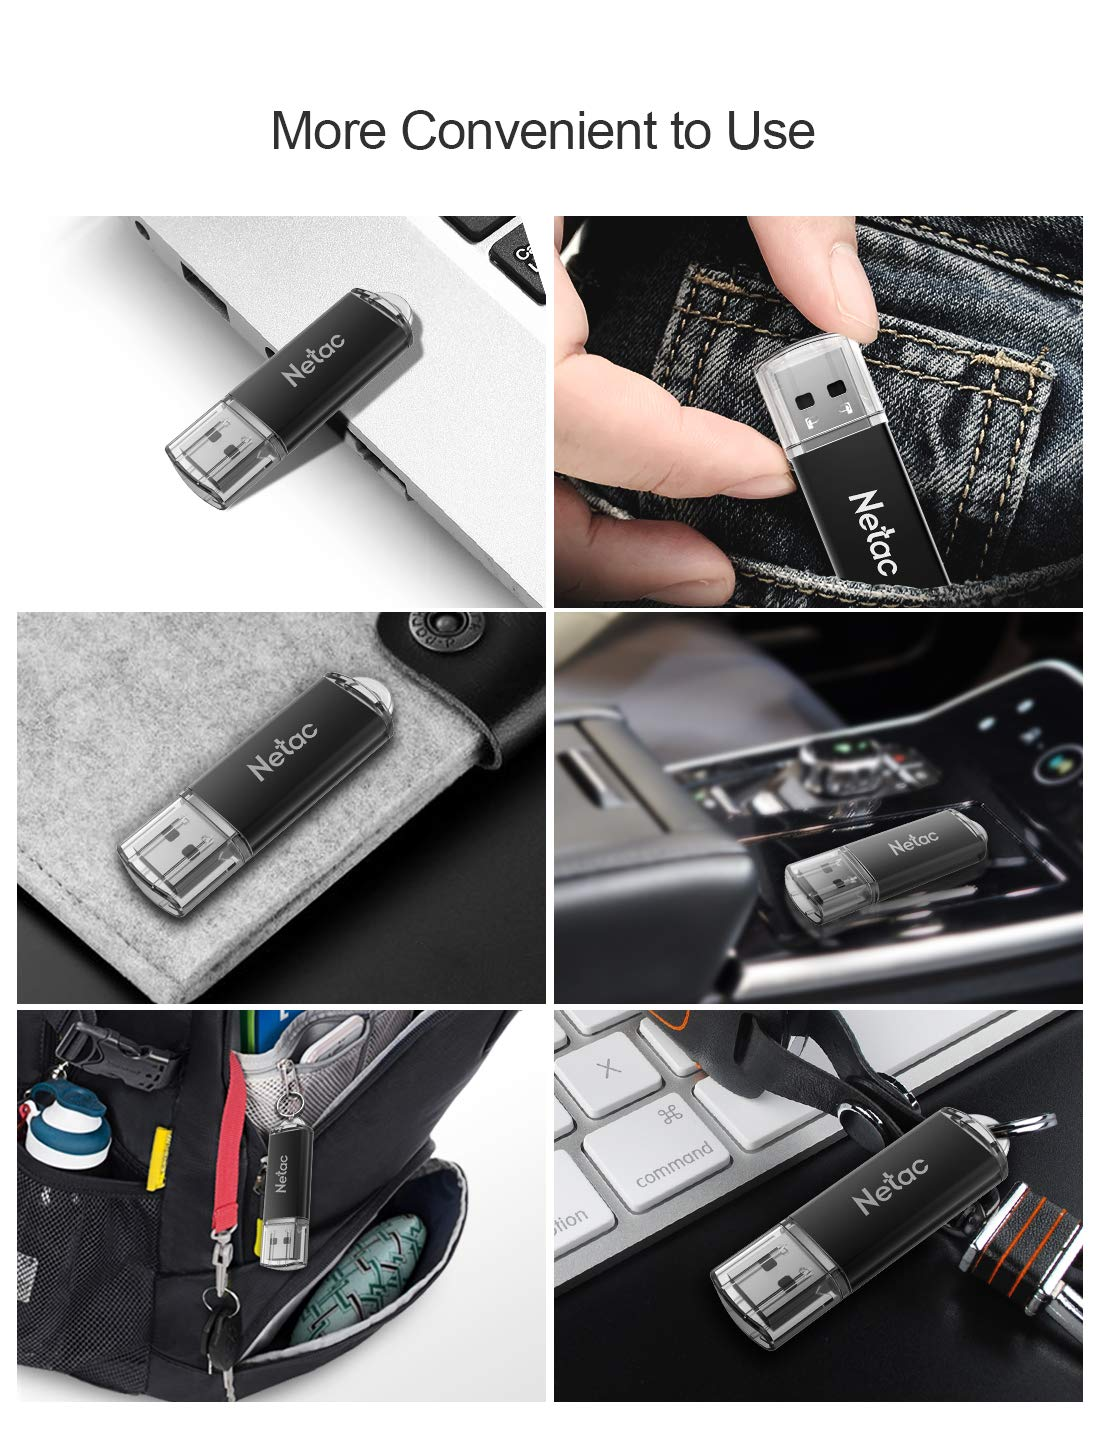 Netac 10 X 16G USB 2.0 Flash Drive, High Speed Swivel Design Memory Stick, Pen Drive, Thumb Drive for Data Storage, Zip Drive and jump Drive with LED Light